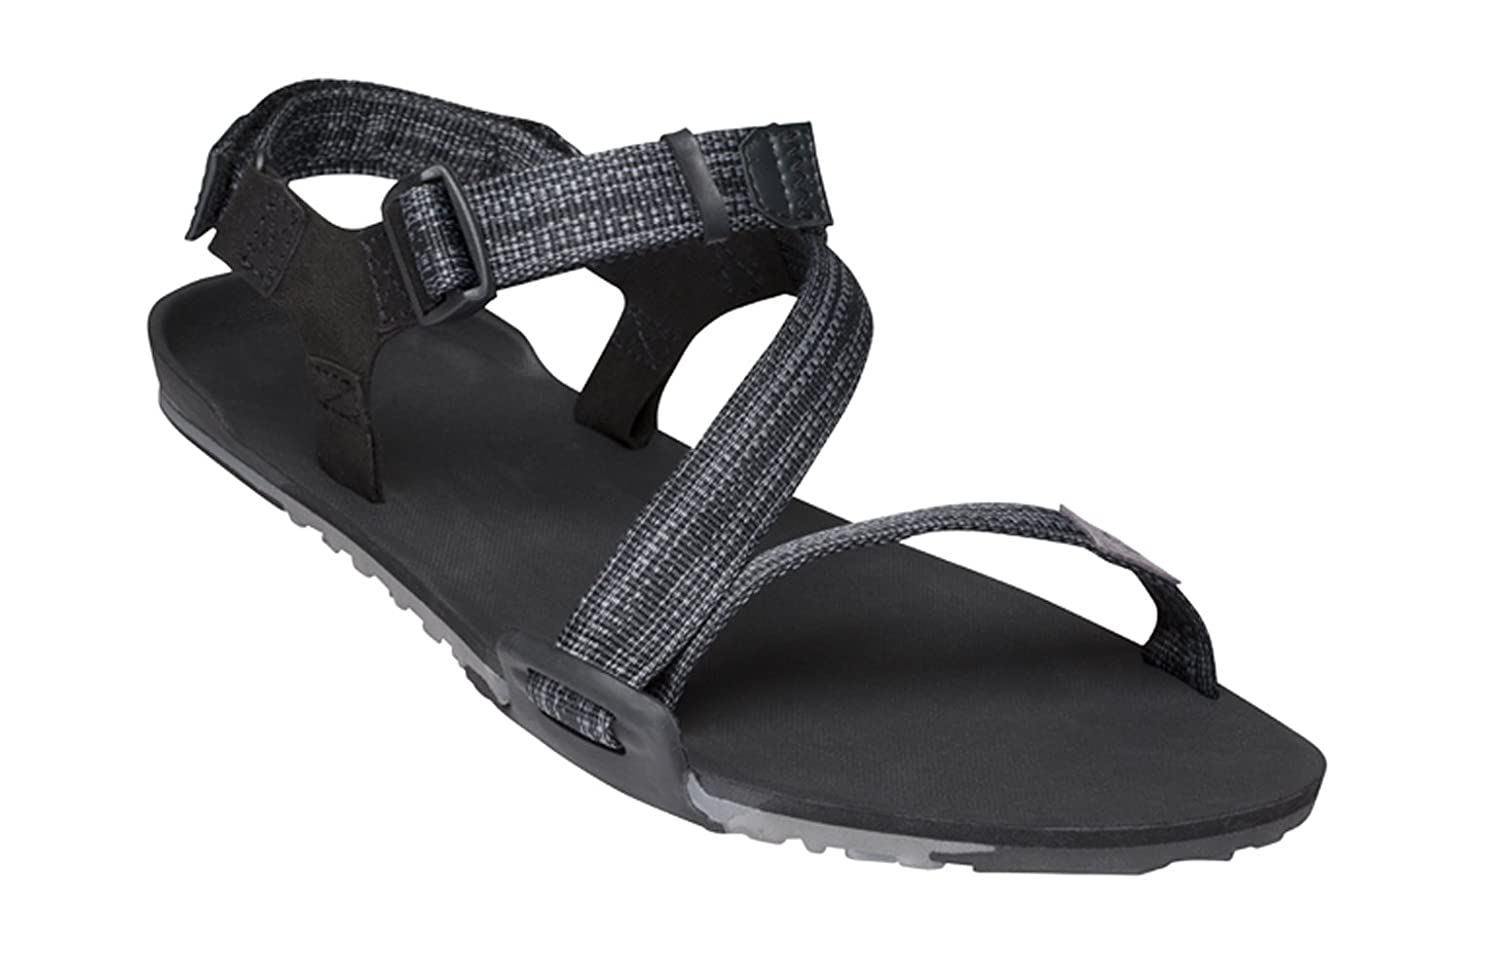 Xero Shoes Z-Trail Lightweight Sandal - Barefoot-Inspired Hiking, Trail, Running Sport Sandals - Women's B06ZYZYGP8 6 B(M) US|Multi-black